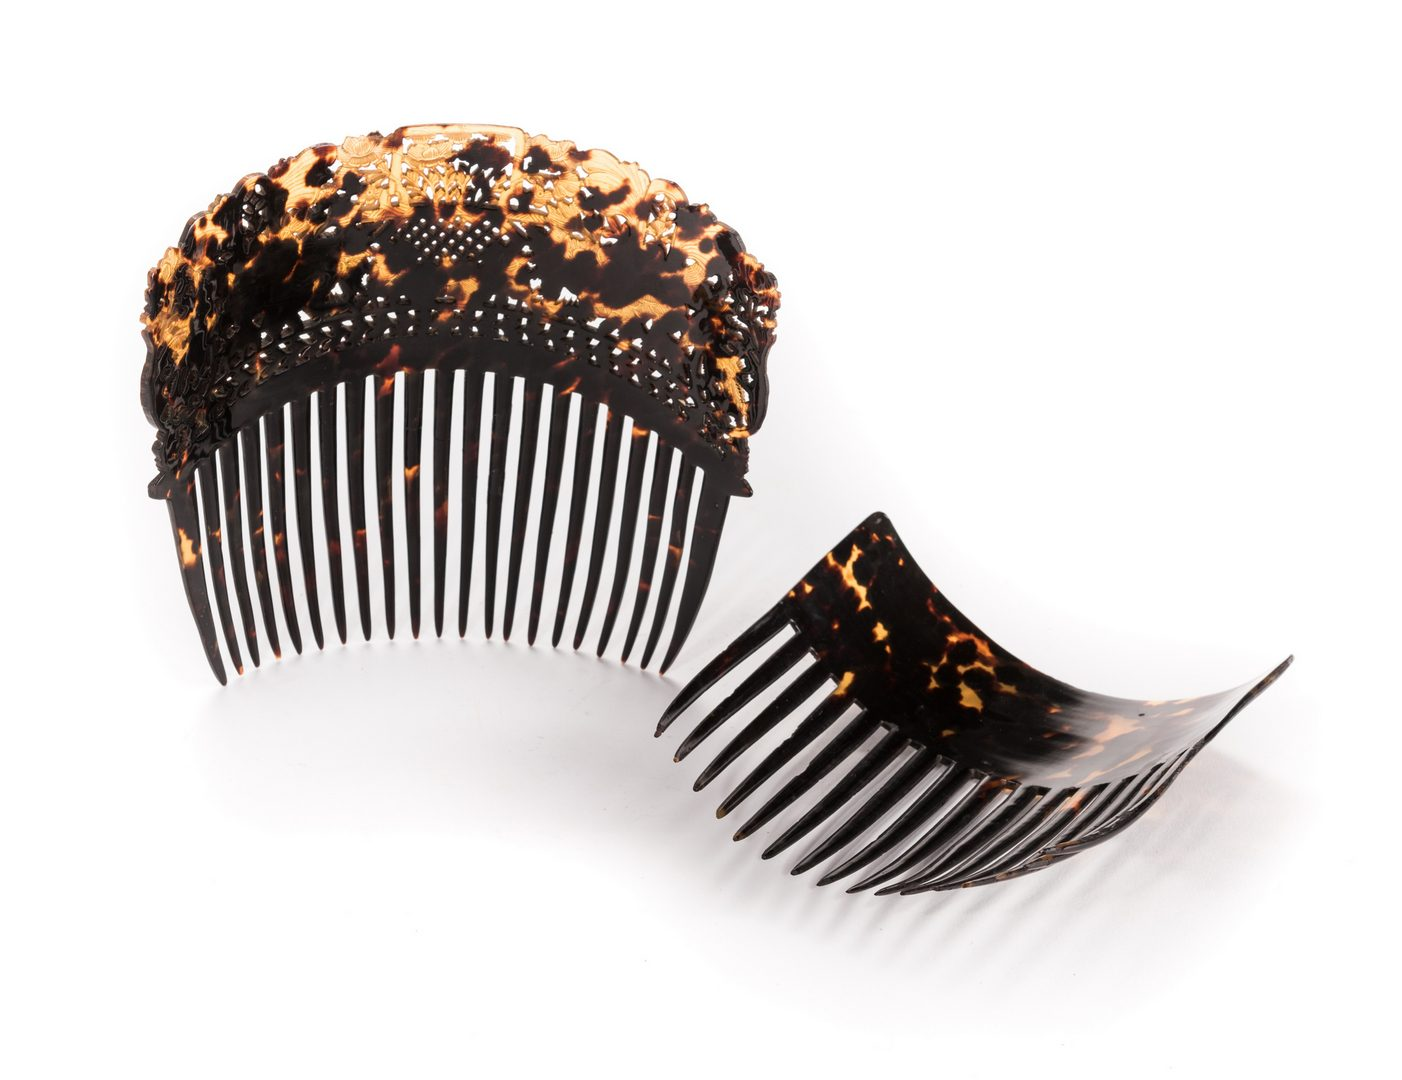 Lot 841: 2 Victorian Tortoiseshell Hair Combs